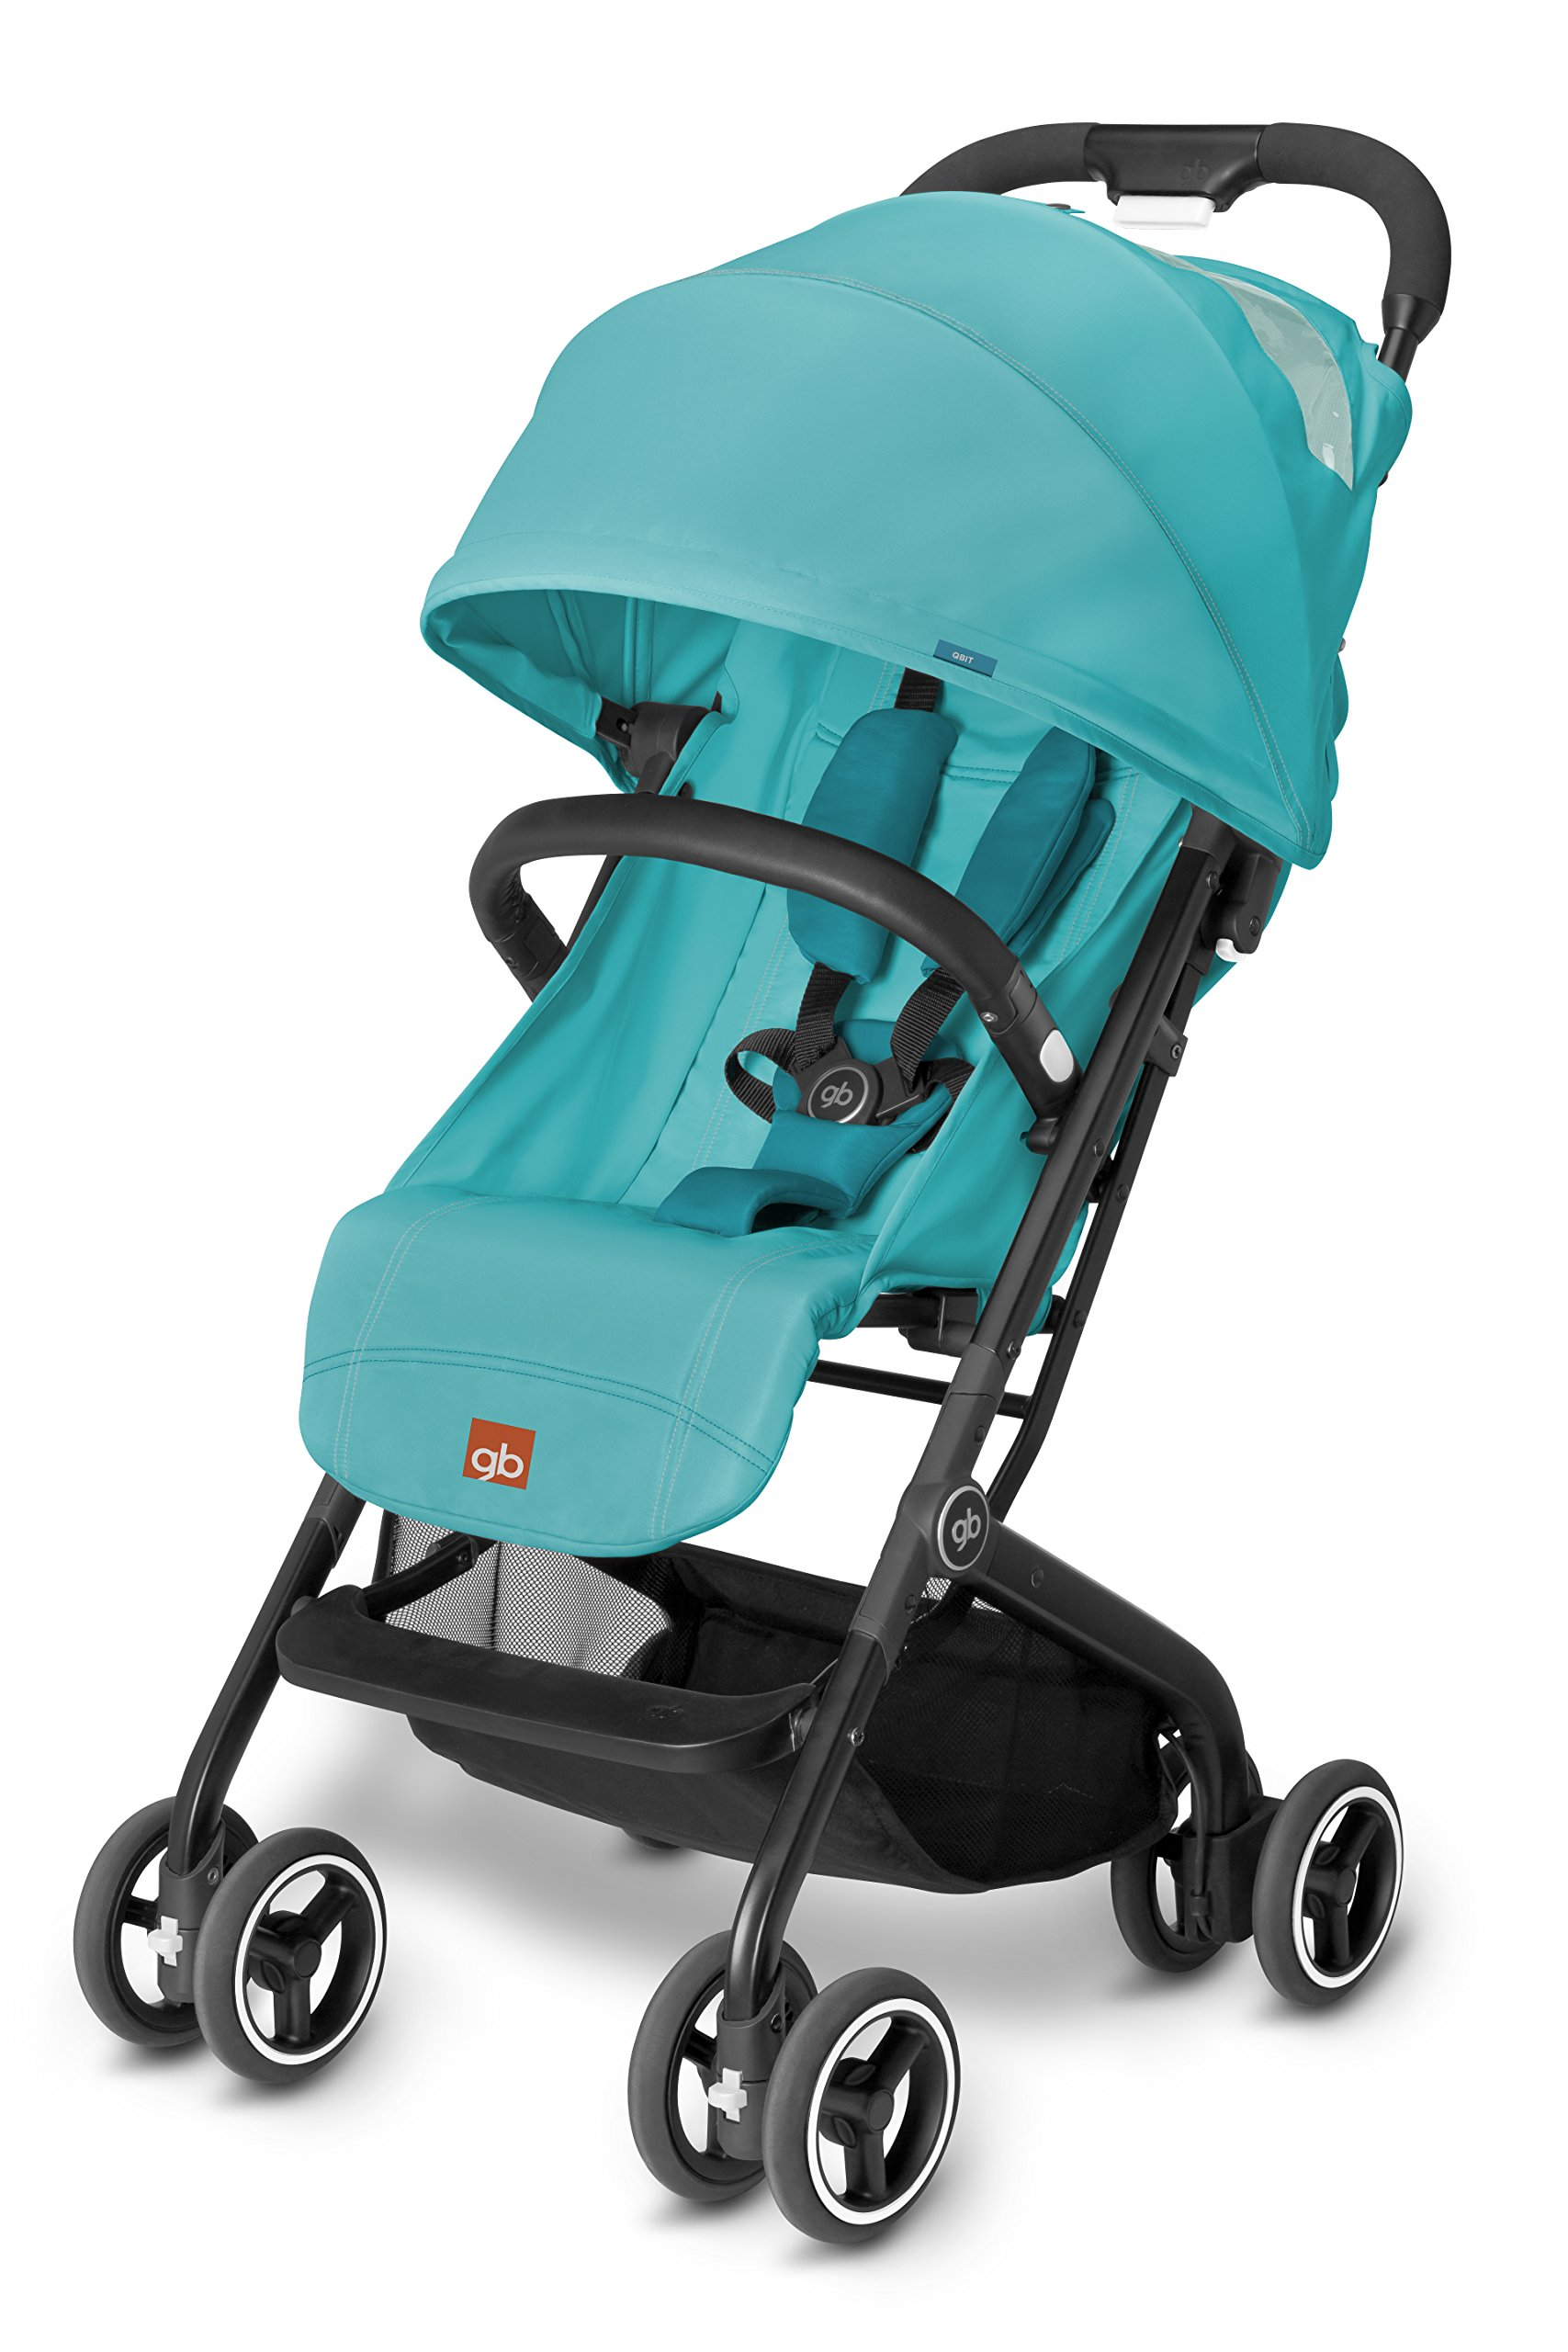 GB Qbit, Strollers, Capri Blue - Turquoise GB The innovative fold technique can be operated using only one hand and transforms the qbit into a Compact and free-standing package Big little buggy - spacious and comfortable for kids, Compact, light and easy to carry for parents Travel system - with the adapters (optional available) you can attach a GB or CYBEX infant car seat onto the frame 1